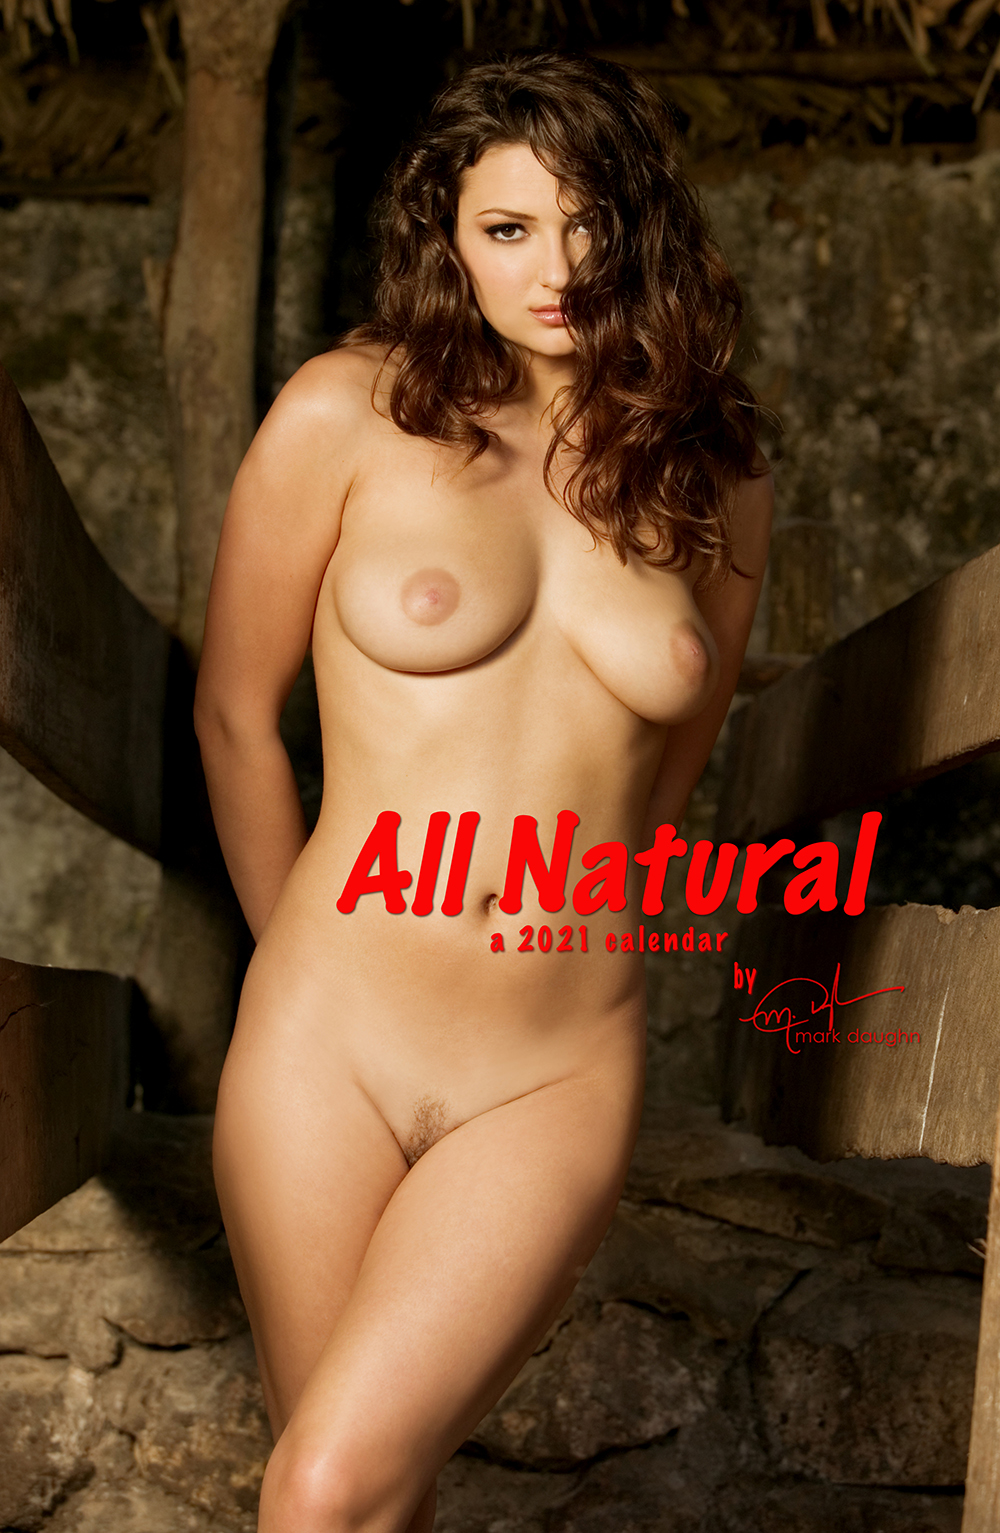 All Natural Special Edition 2021 Wall Calendar